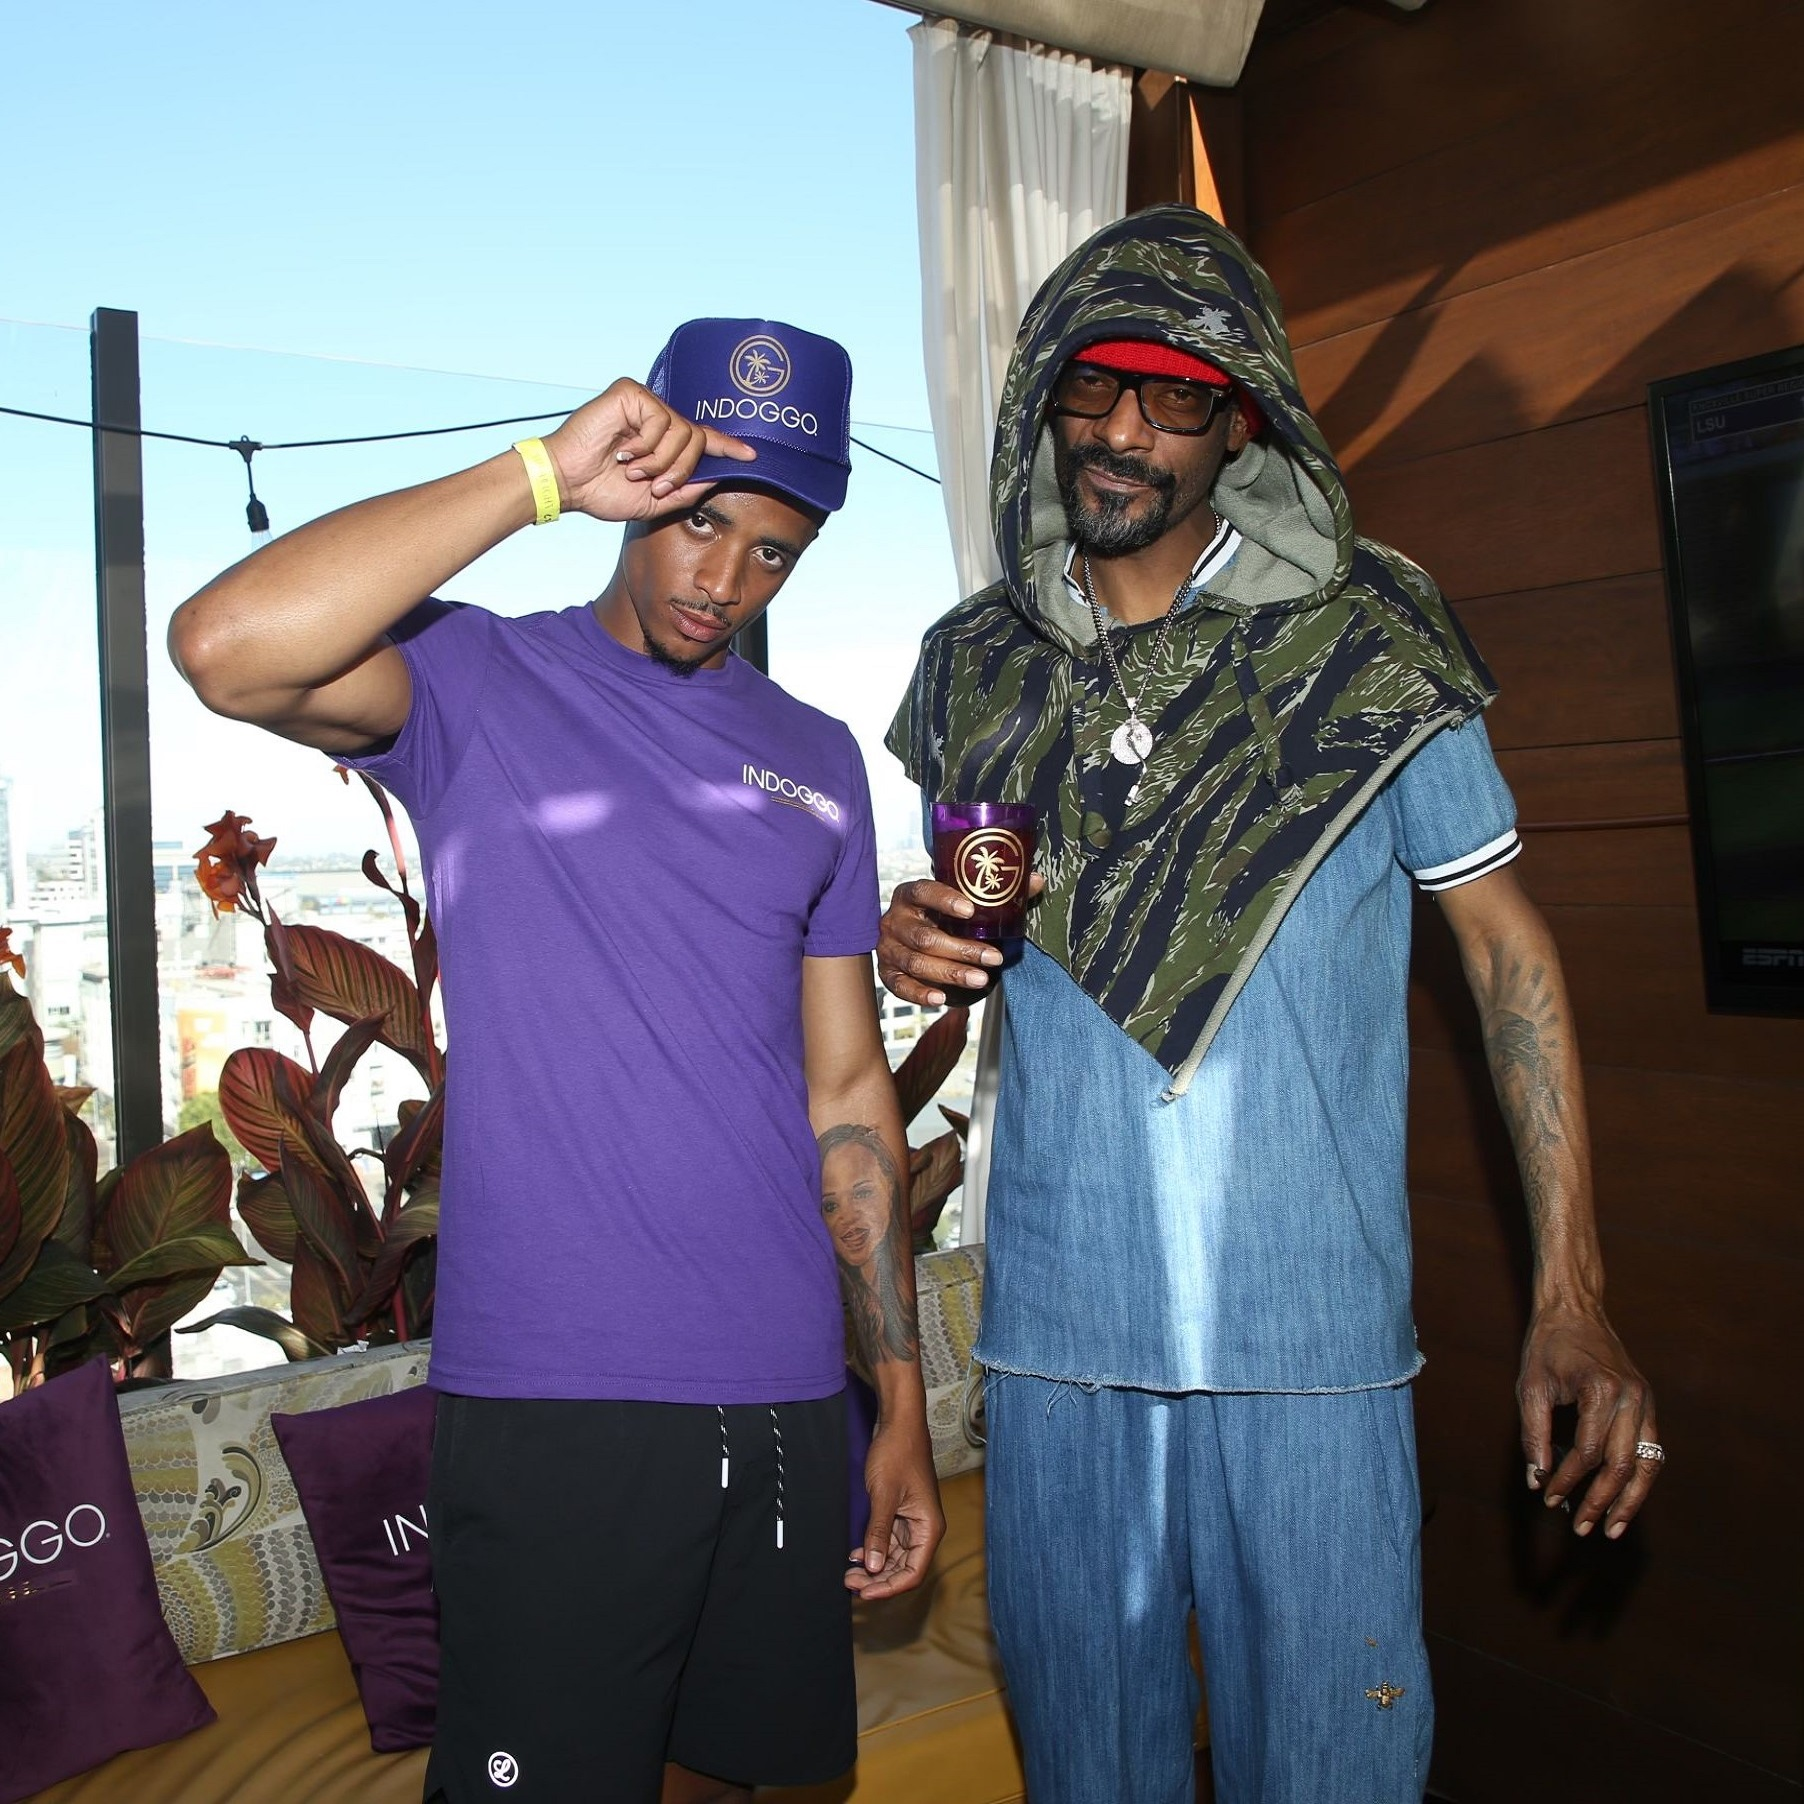 Cordell and Snoop via Fingerprint Communications for use by 360 Magazine